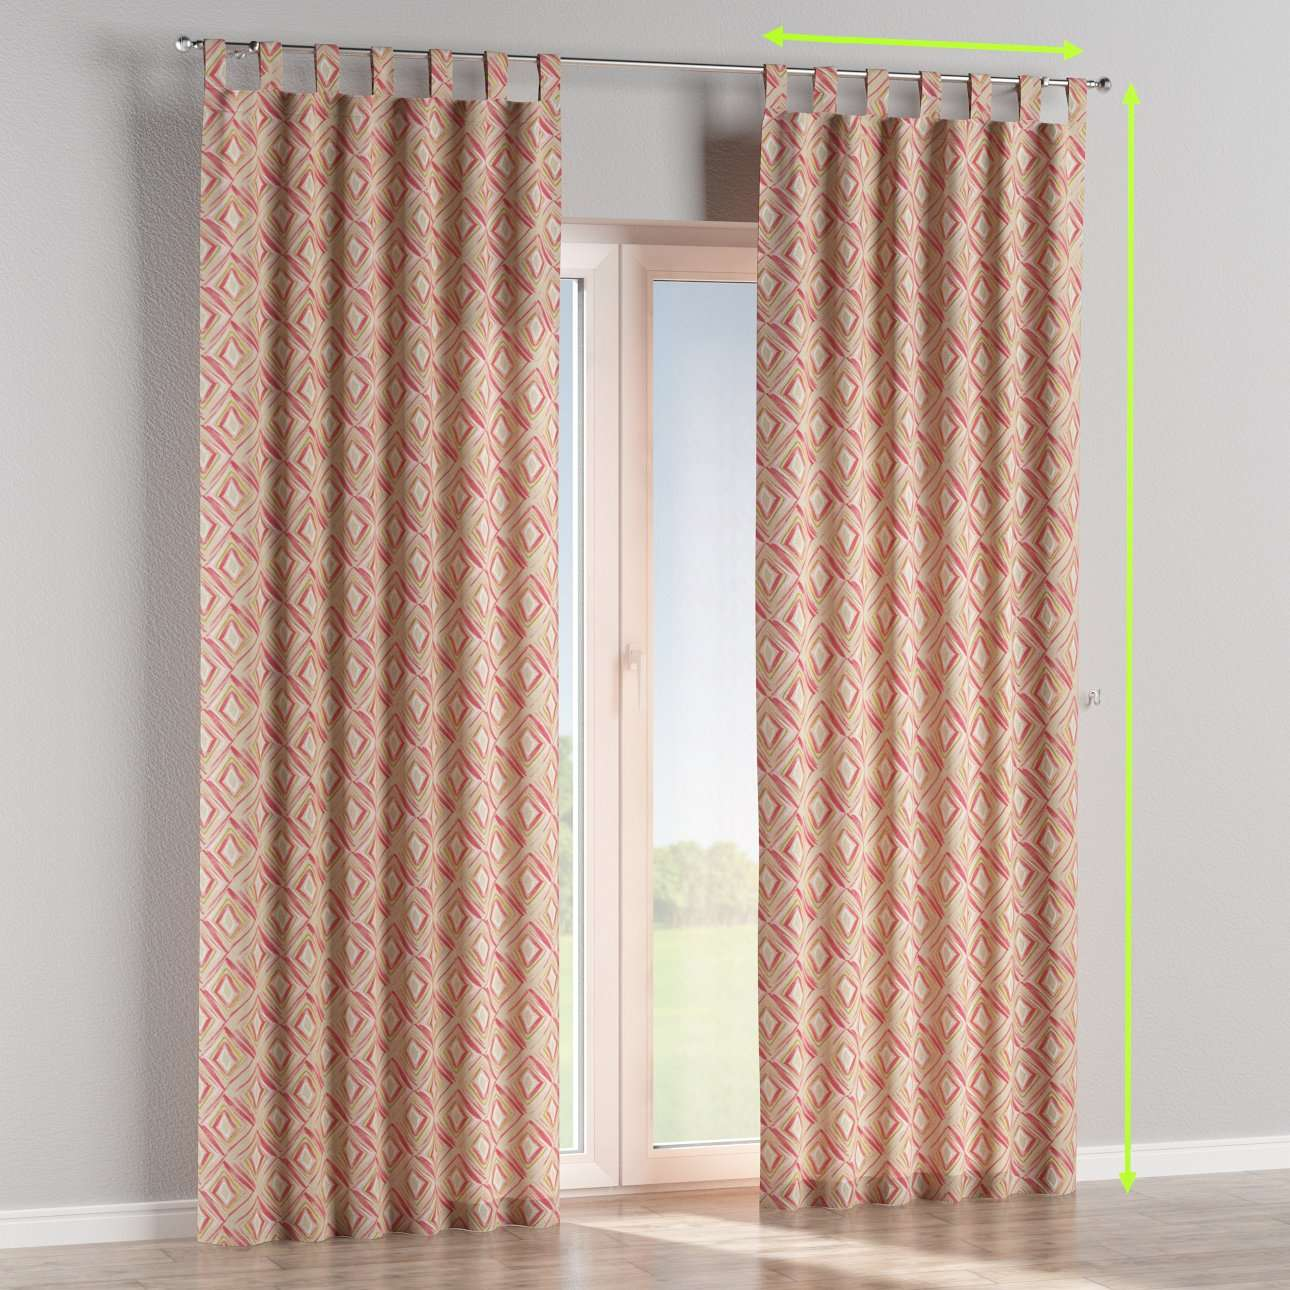 Tab top lined curtains in collection Londres, fabric: 140-45